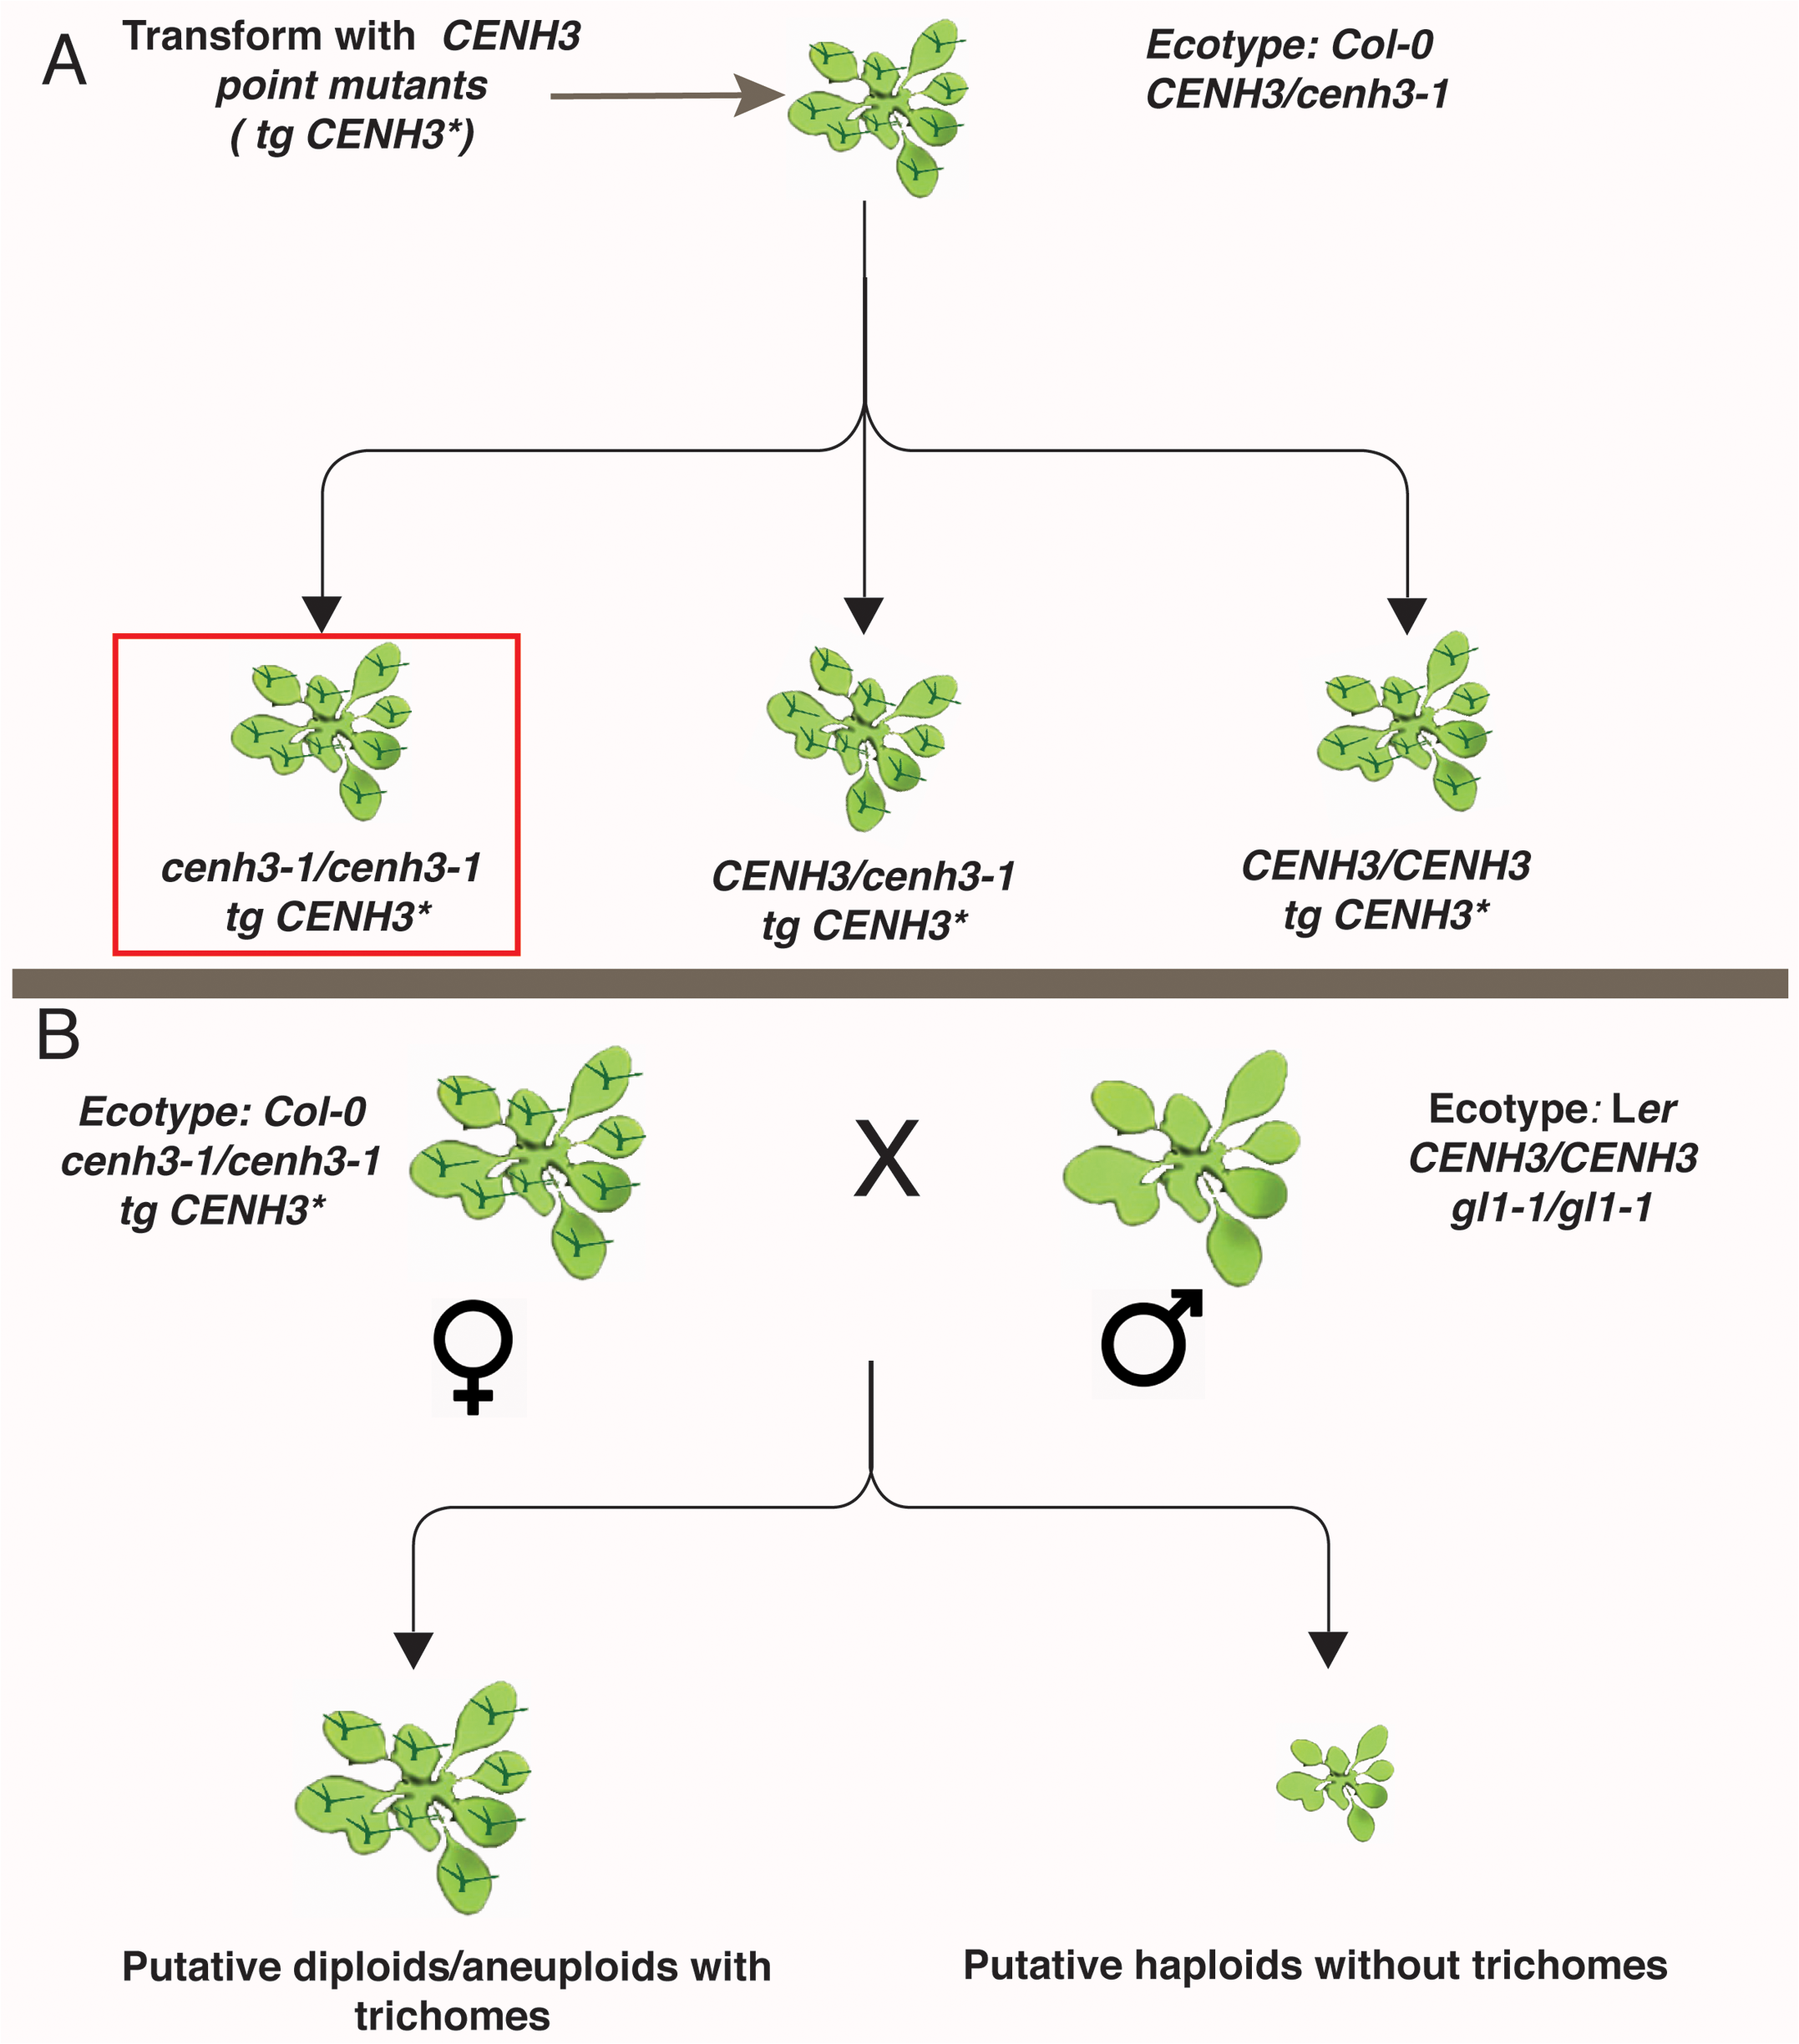 Schematic representation of transgenic <i>CENH3</i> point mutant transformation and crossing.